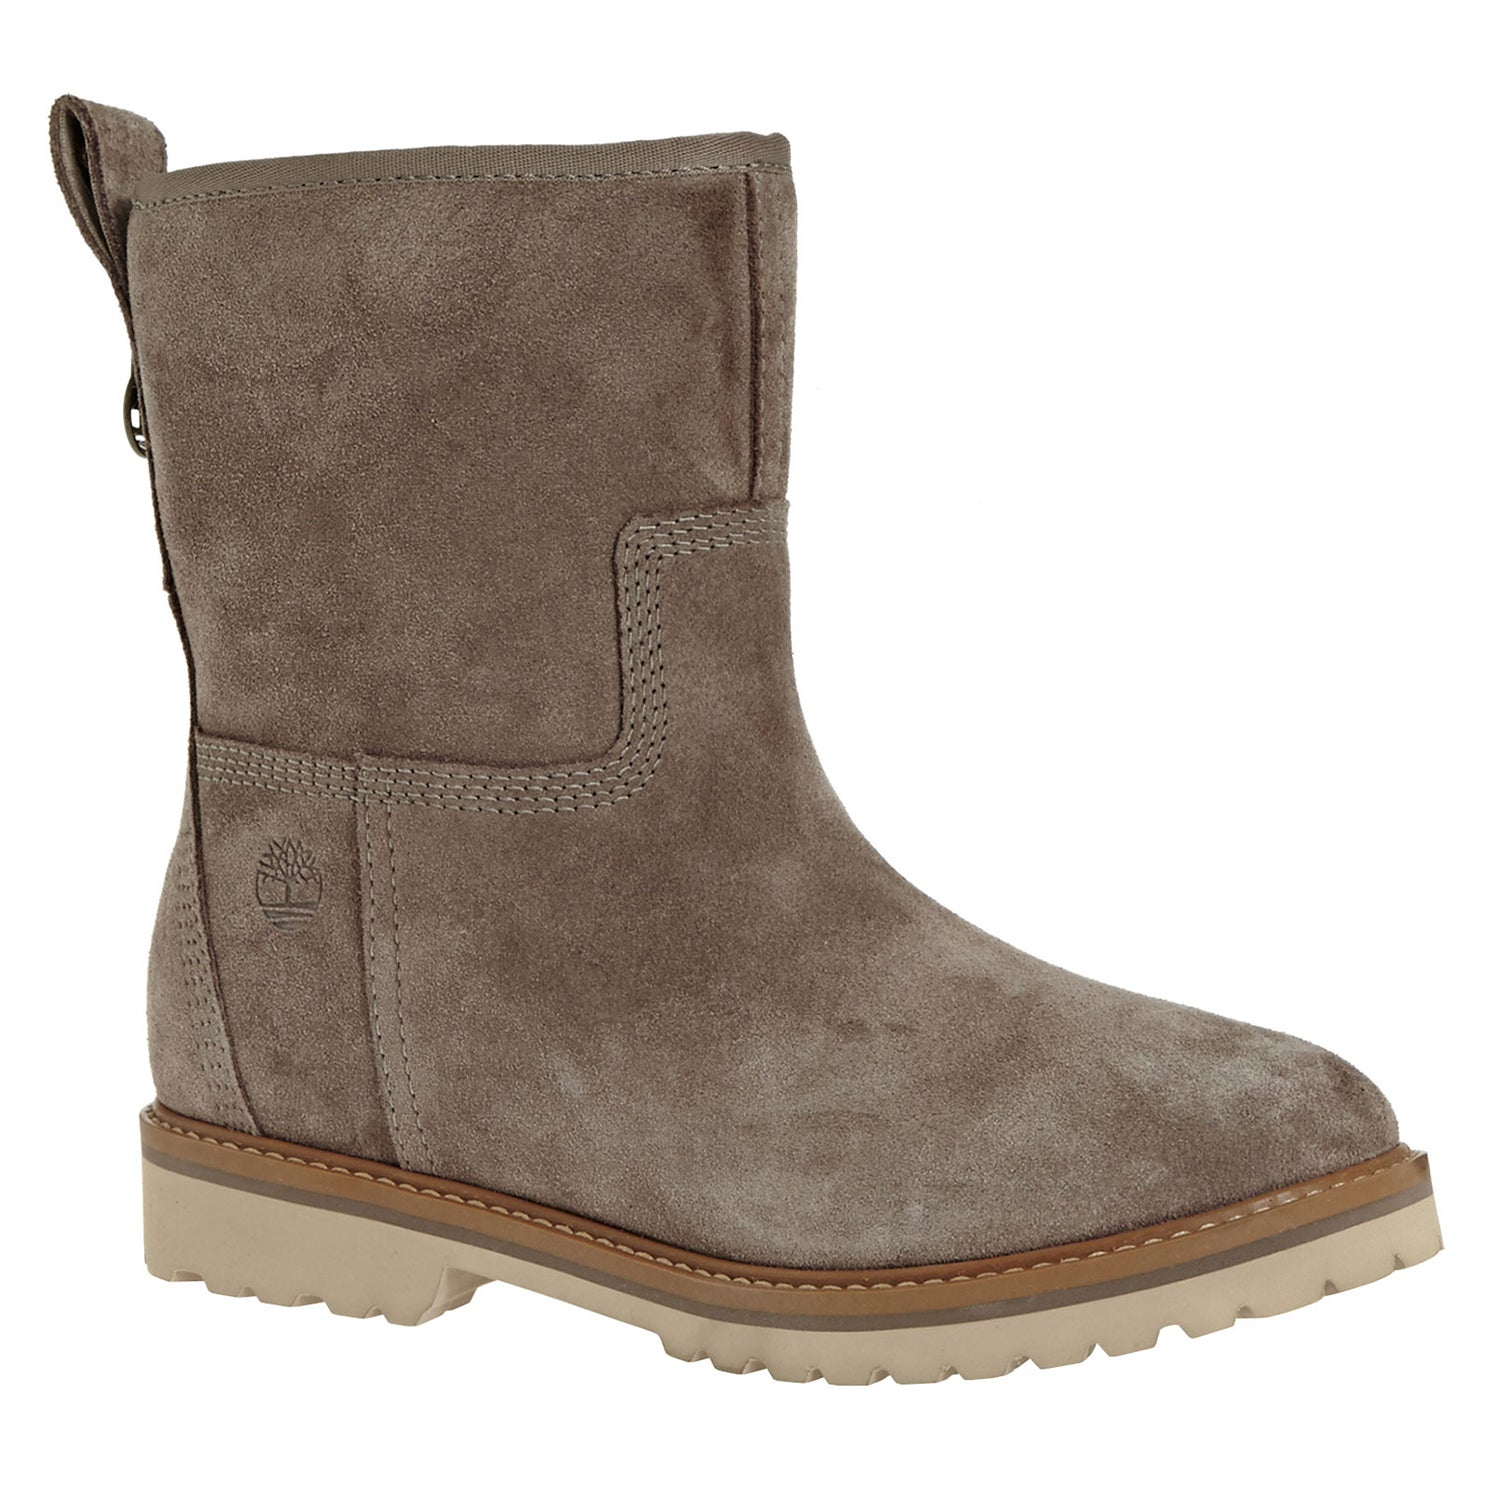 Details about Timberland Chamonix Valley Womens Boots Taupe